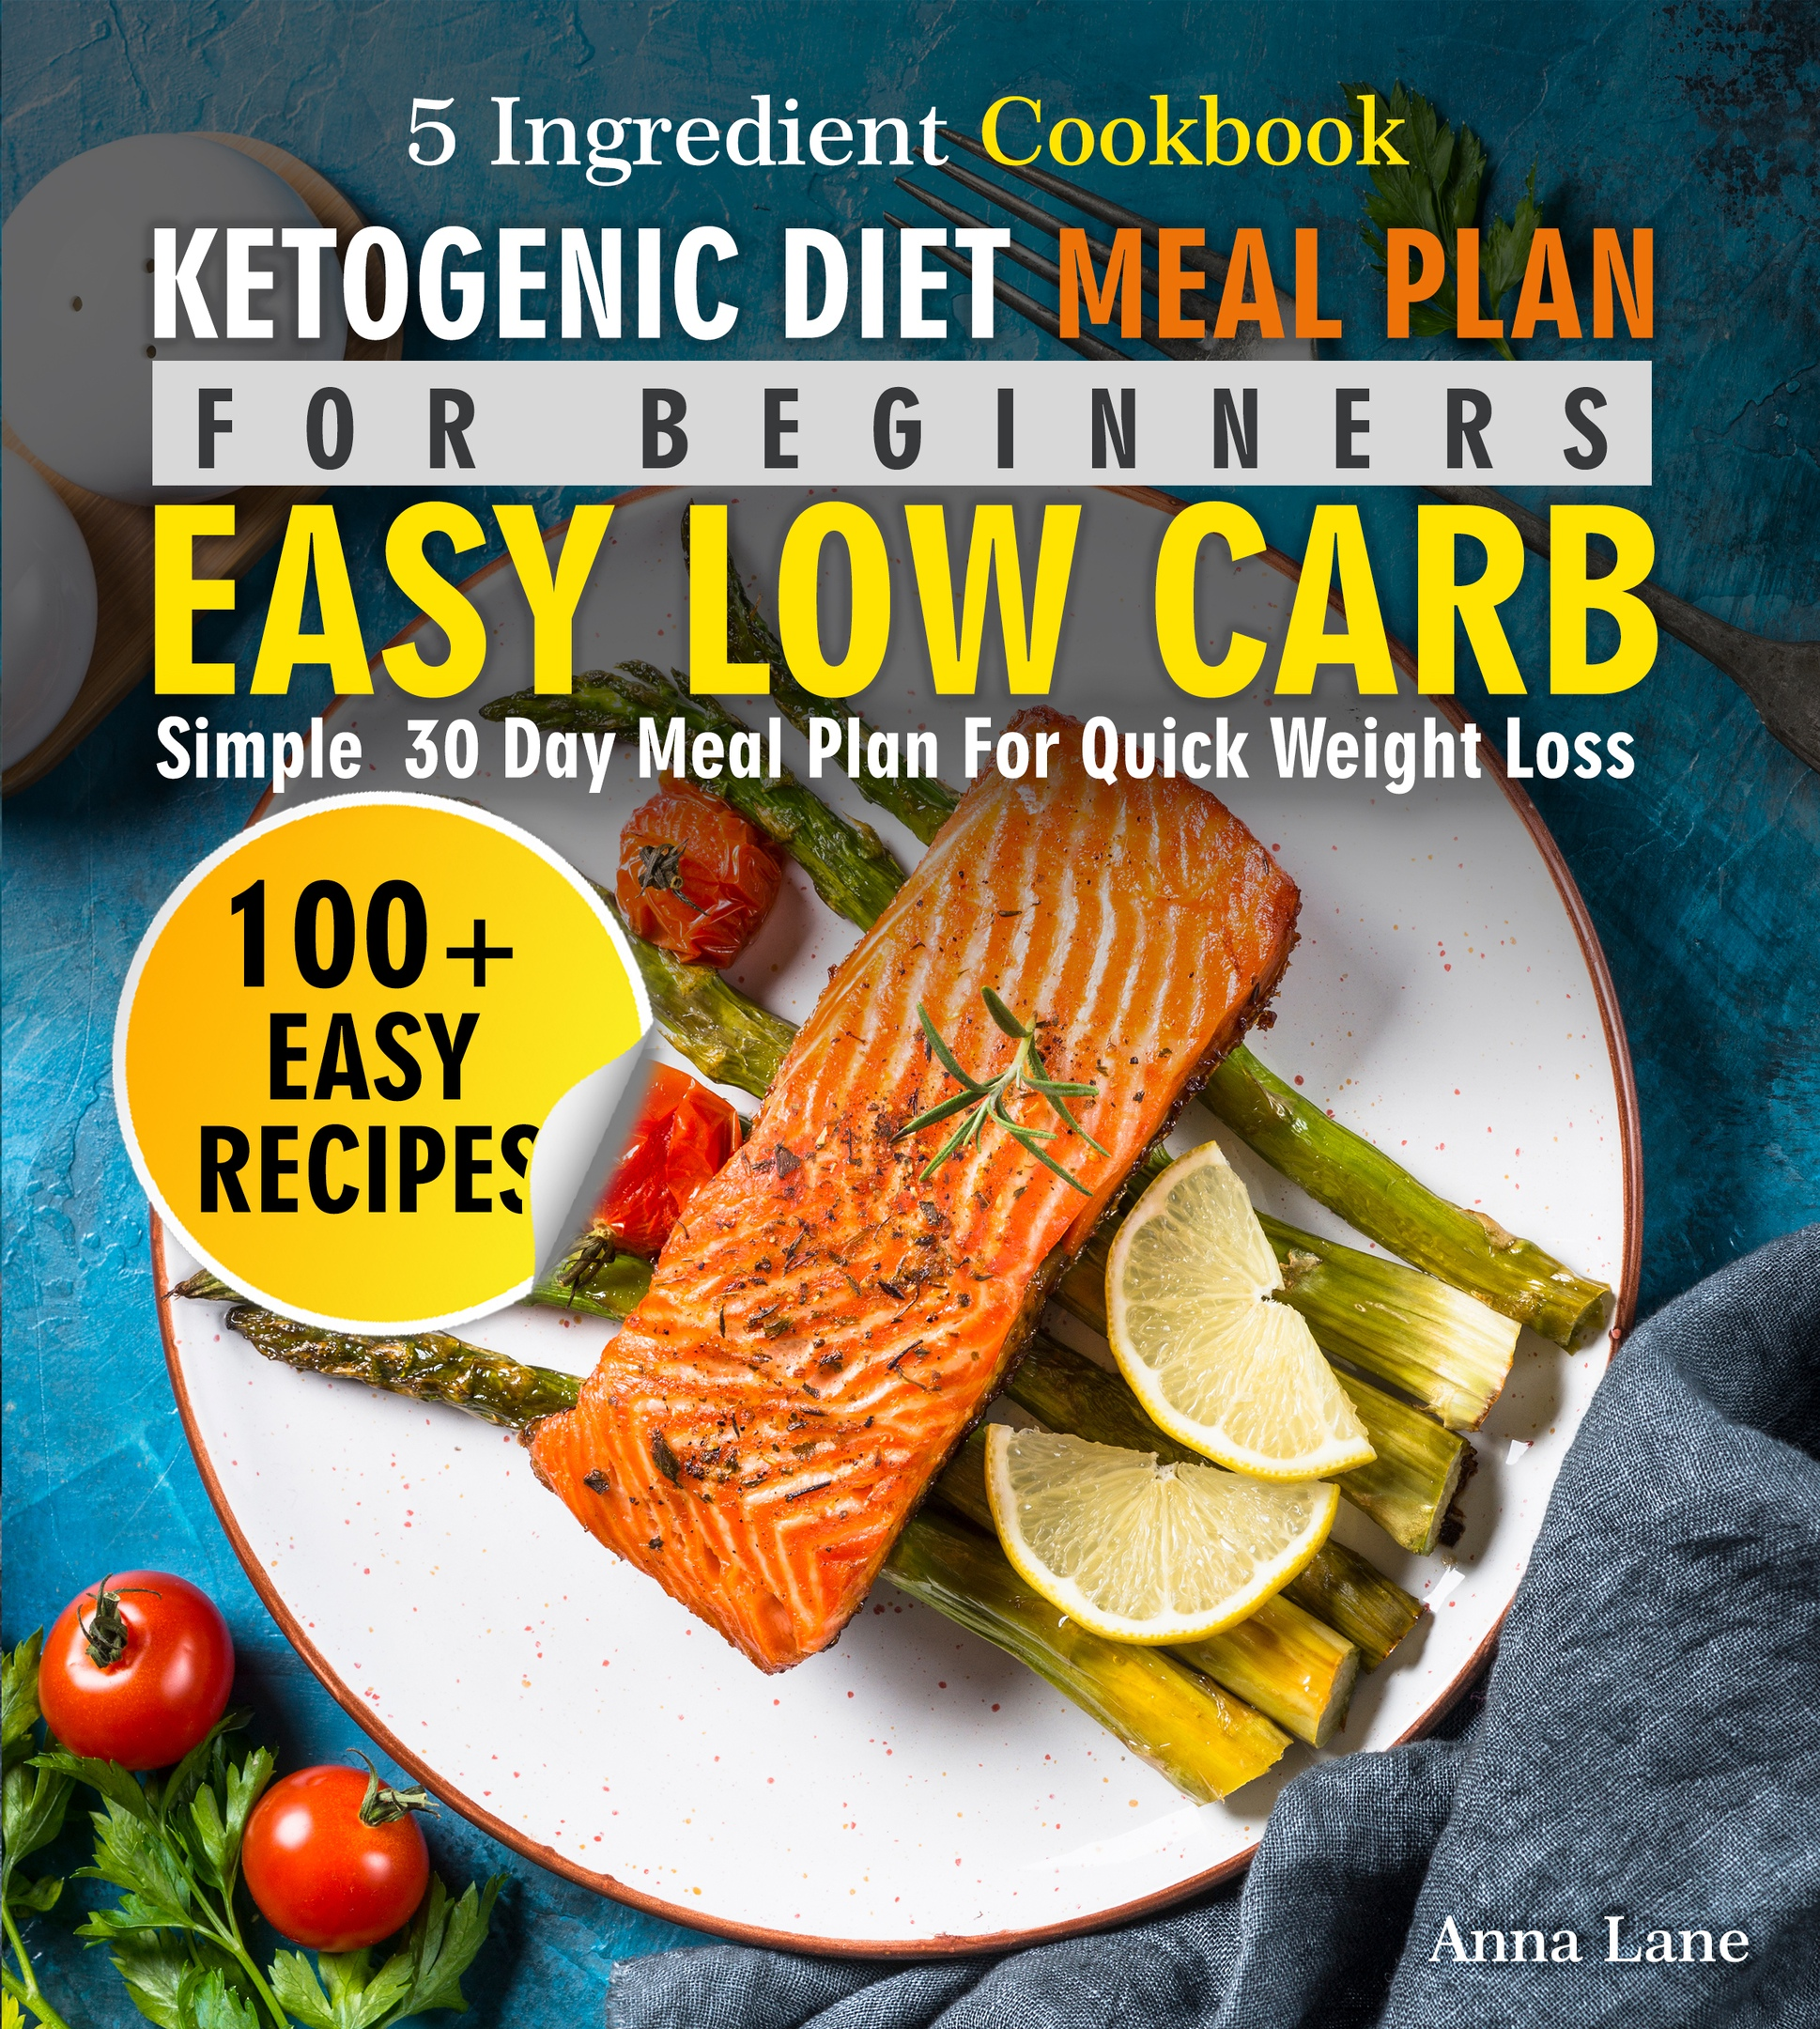 Ketogenic Diet Meal Plan for Beginners: An Easy, Low Carb ...